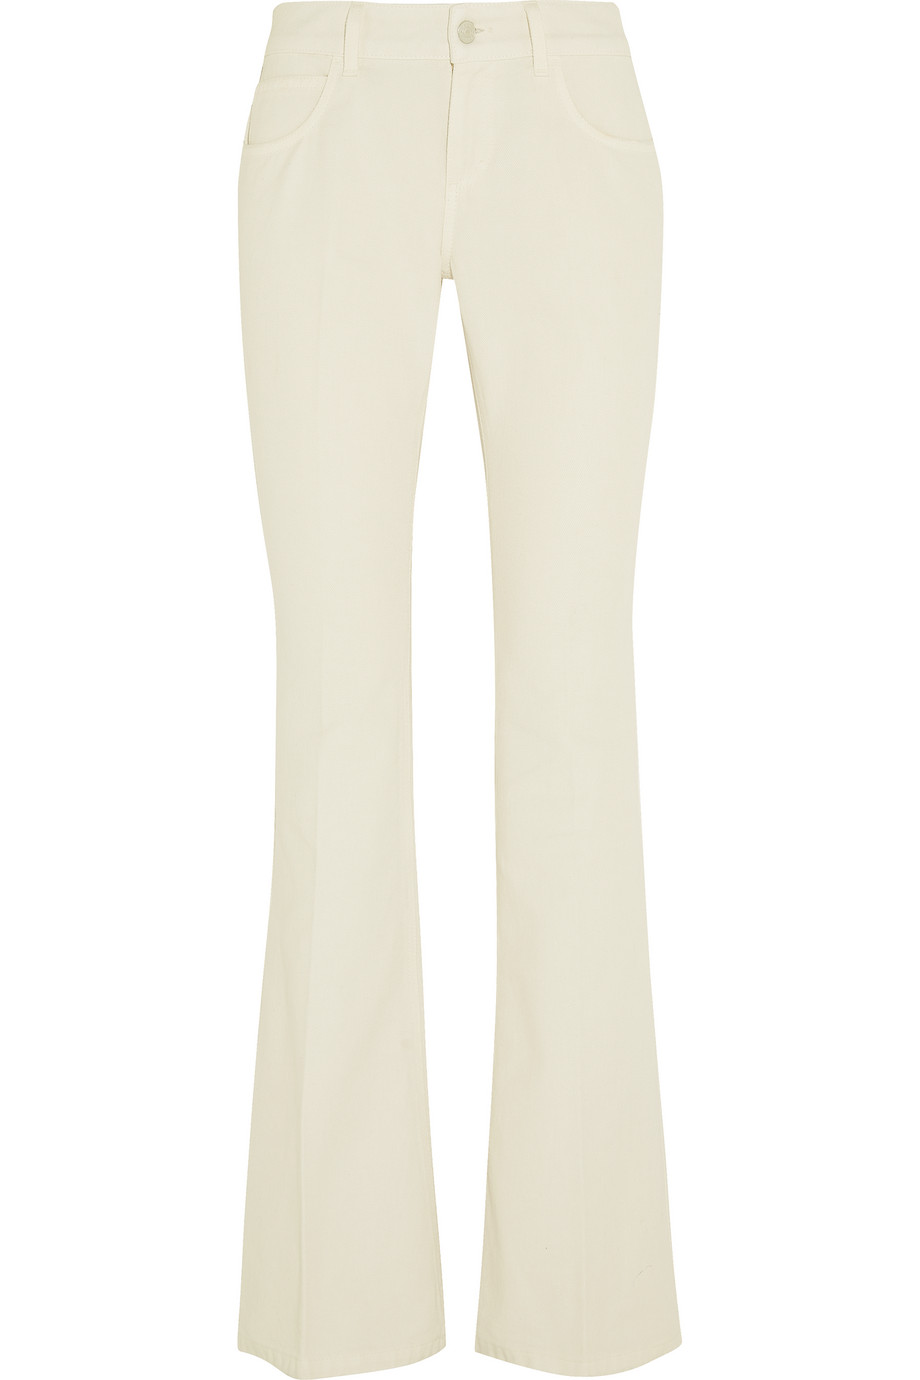 Gucci Mid-Rise Flared Jeans, White, Women's, Size: 31